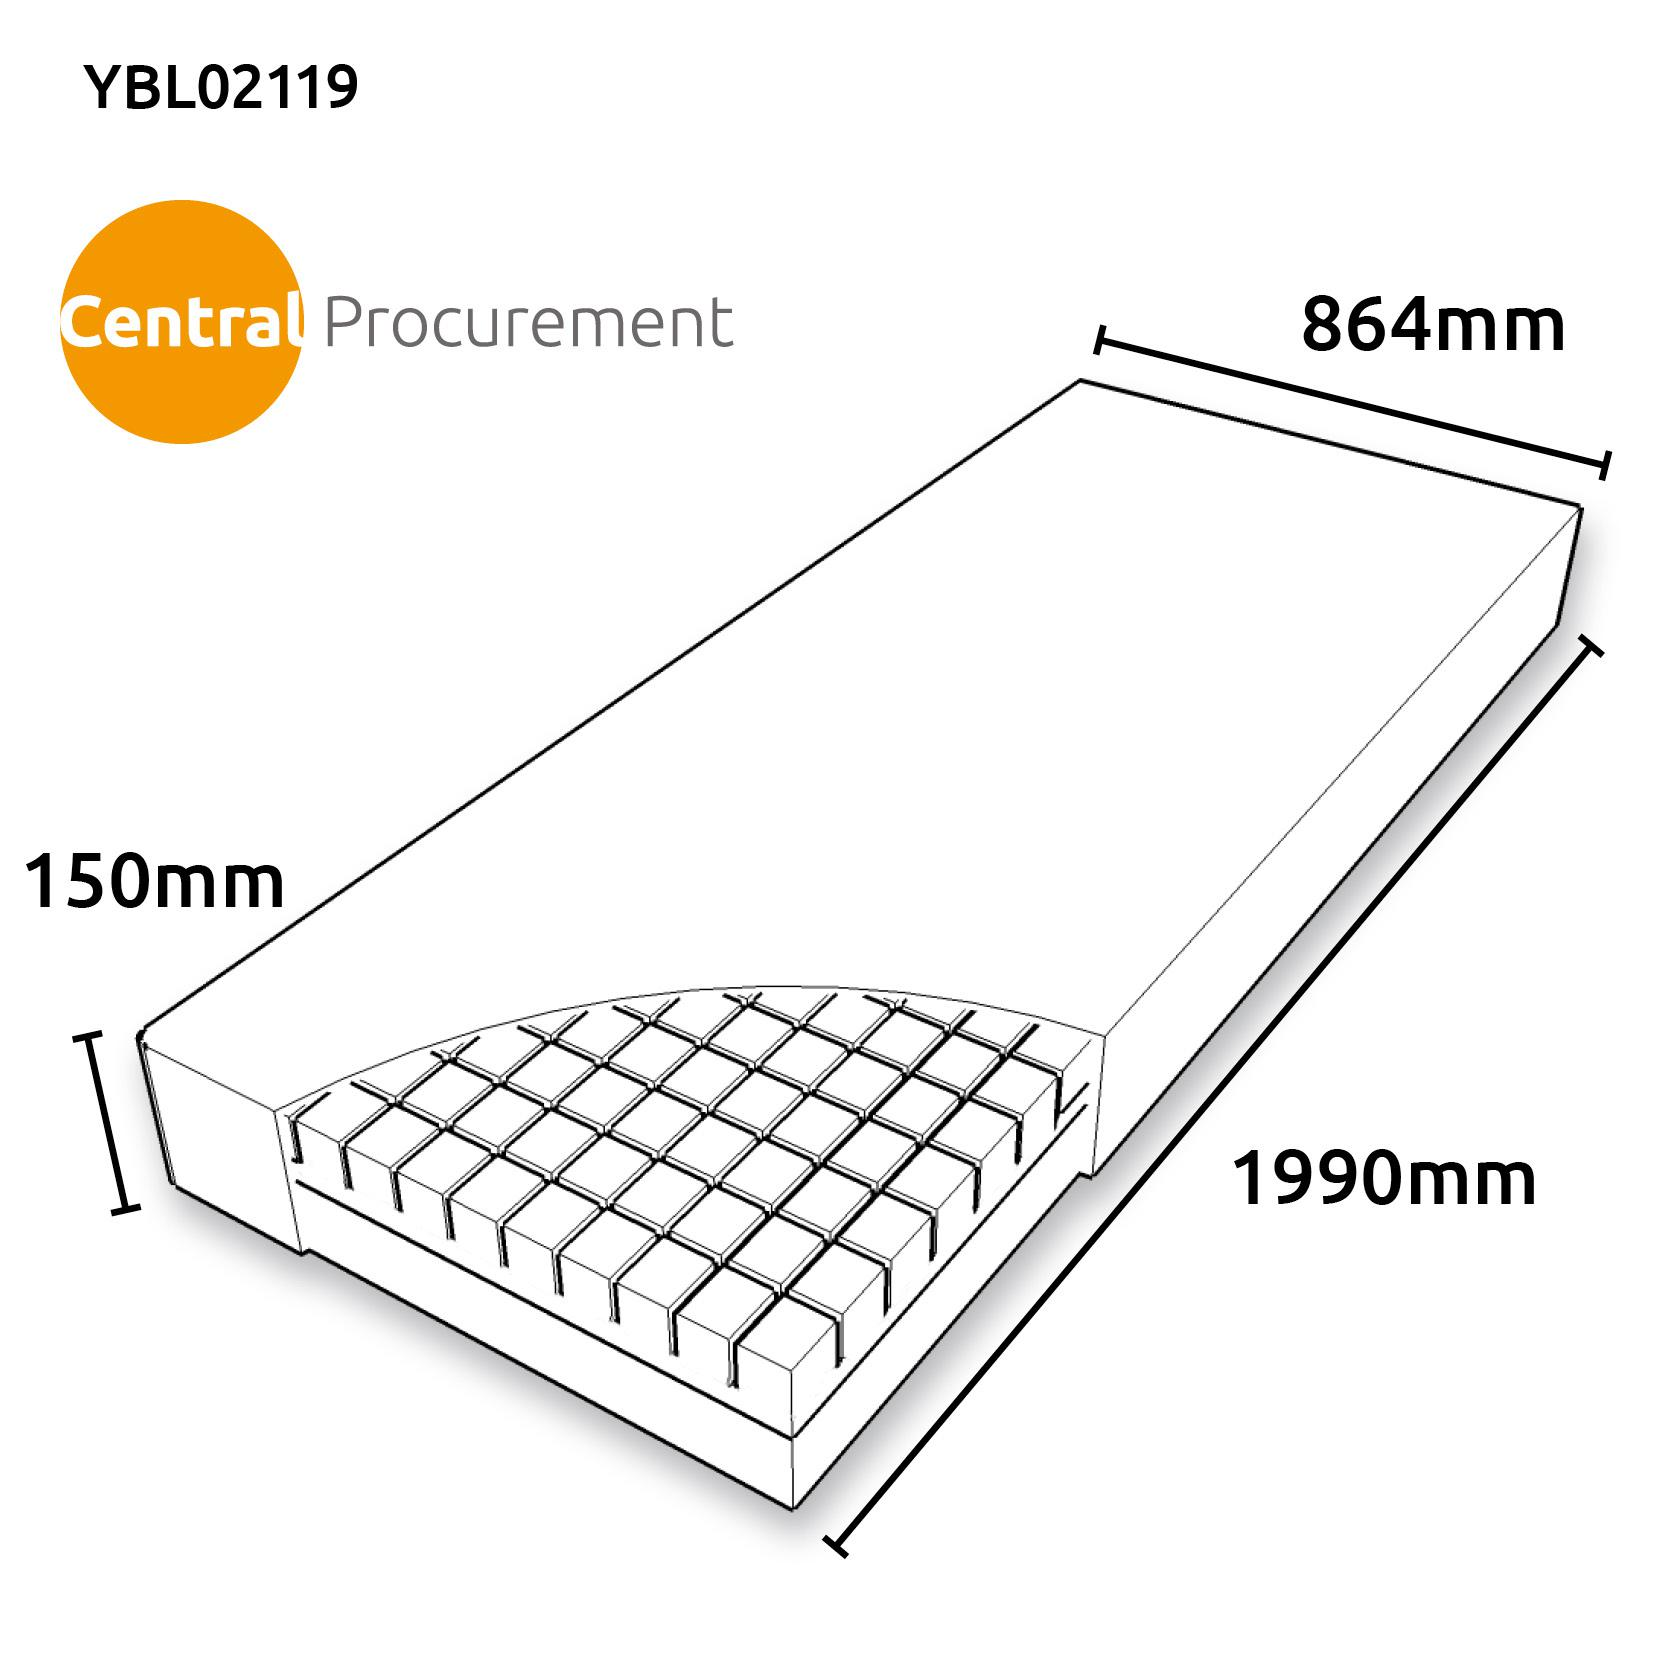 Cushions For Bed Sores picture on static pressure relieving deep 1205931 with Cushions For Bed Sores, sofa 7520e724f4fcfcc7391a4c6416bcf9ef